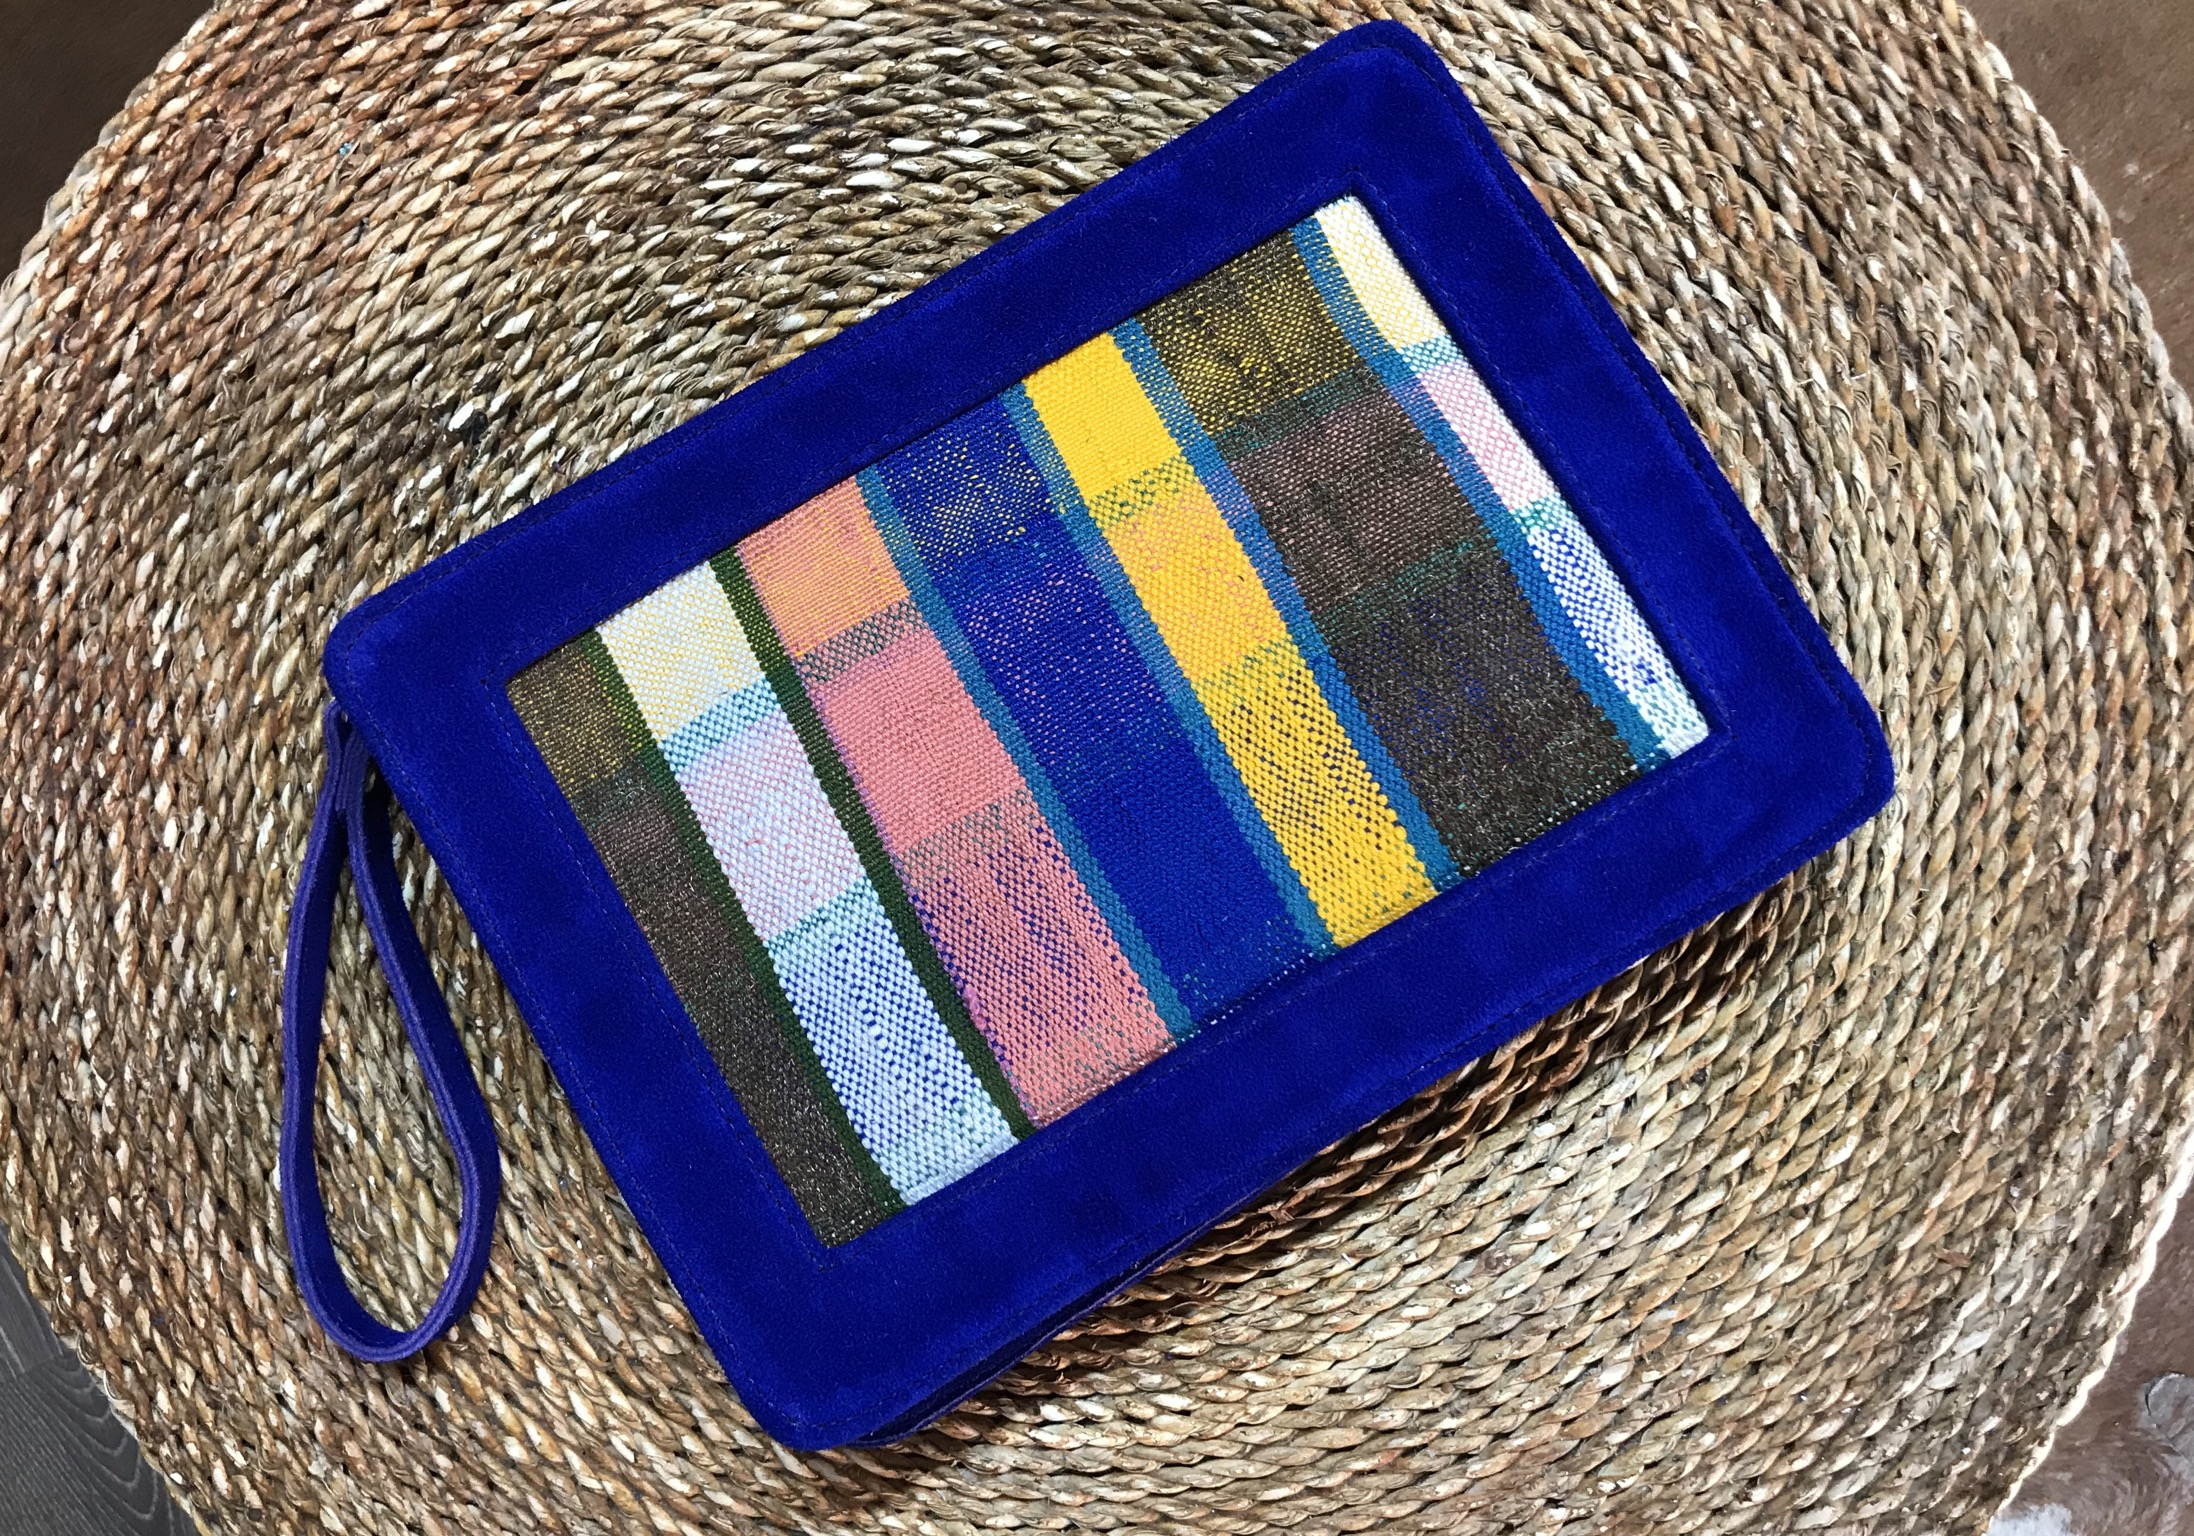 Purse suede leather blue majorelle & colorful Rug with chain